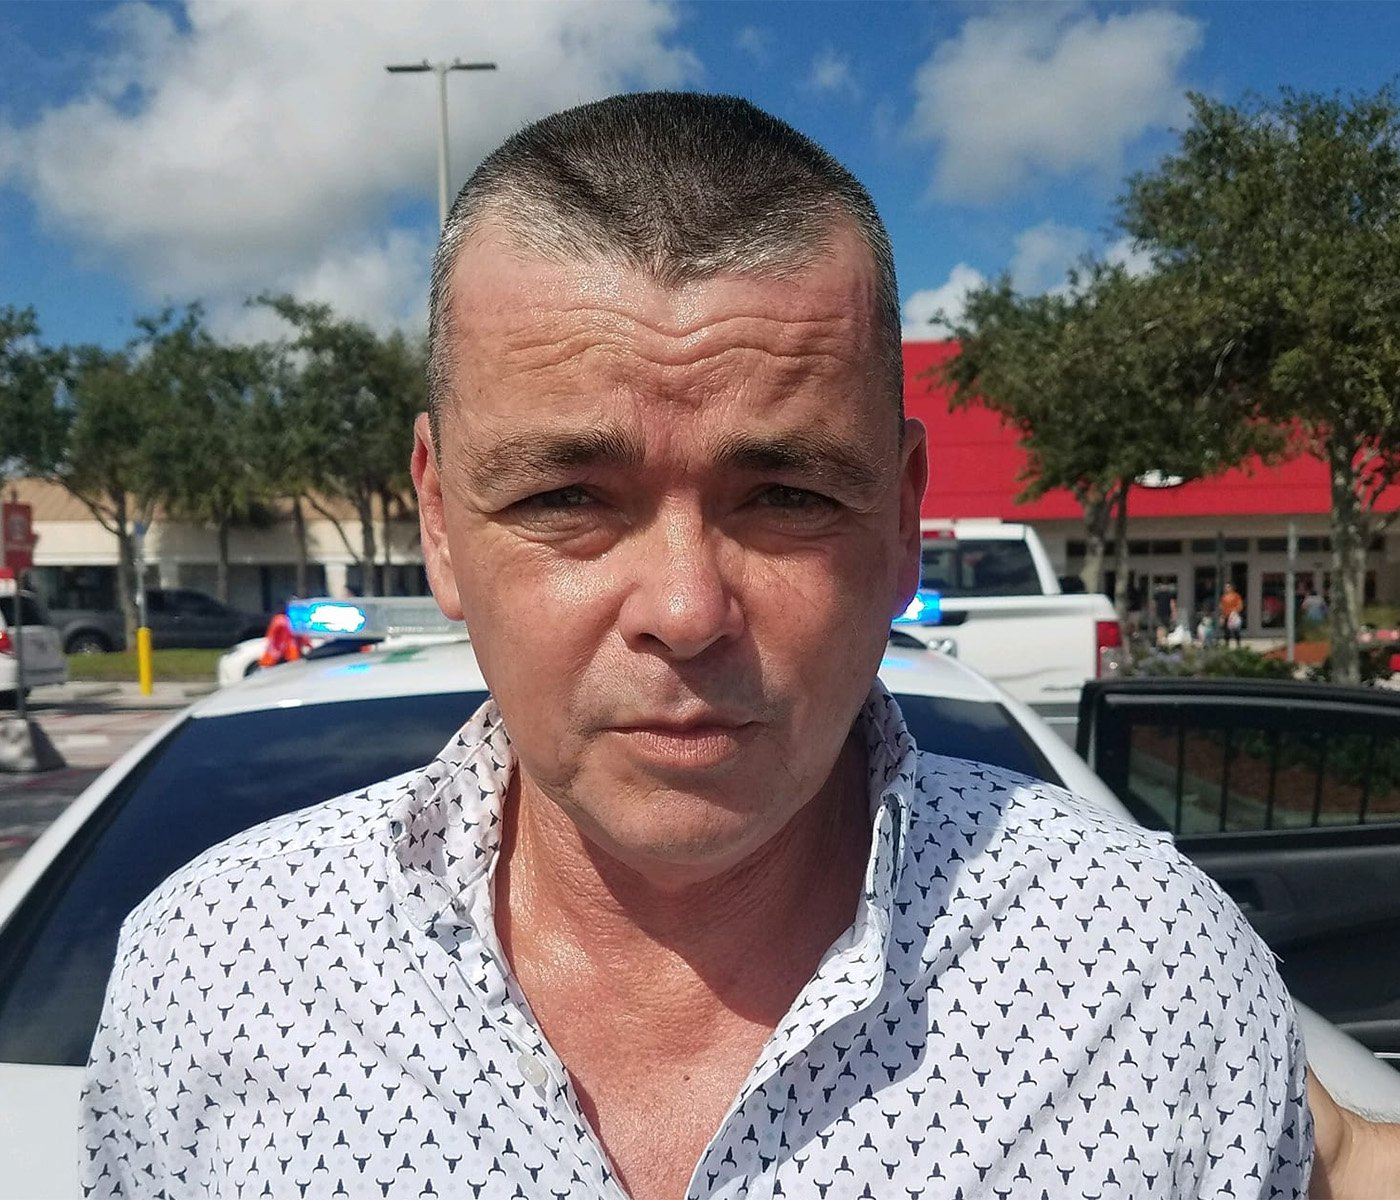 Wyoming fugitive wanted for cattle rustling captured in Indian River County